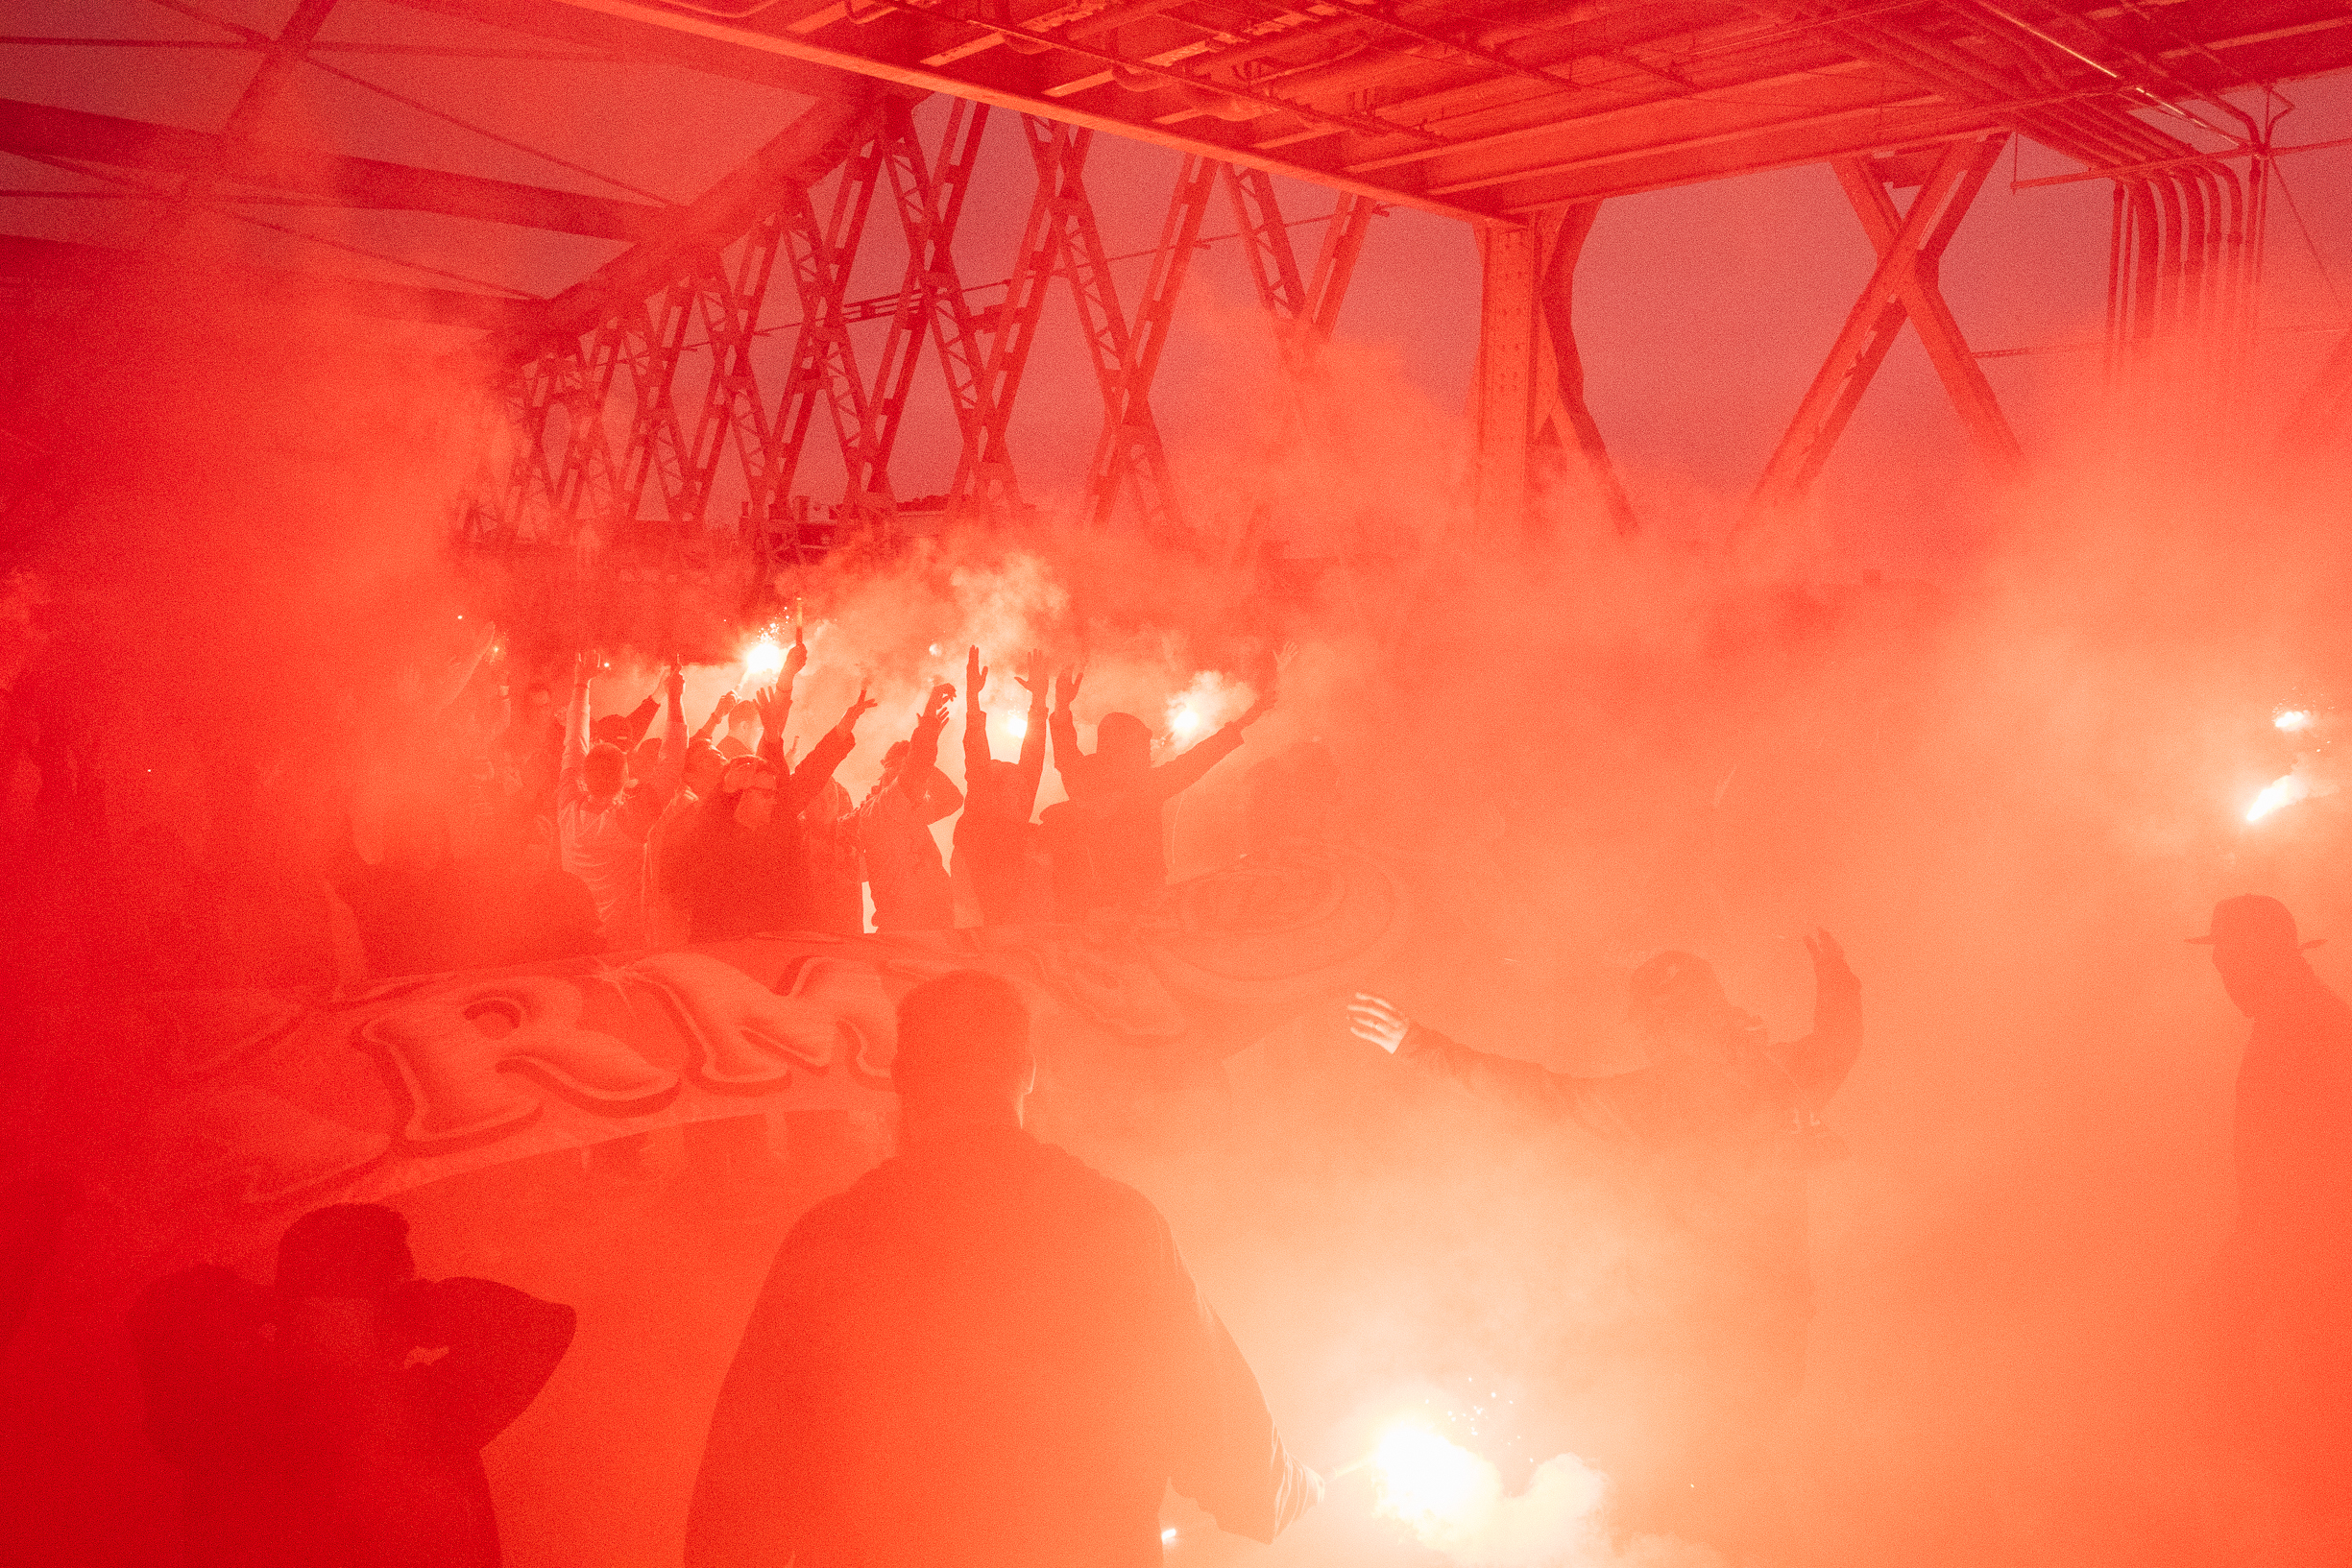 New York Red Bulls on game day; April 15, 2017